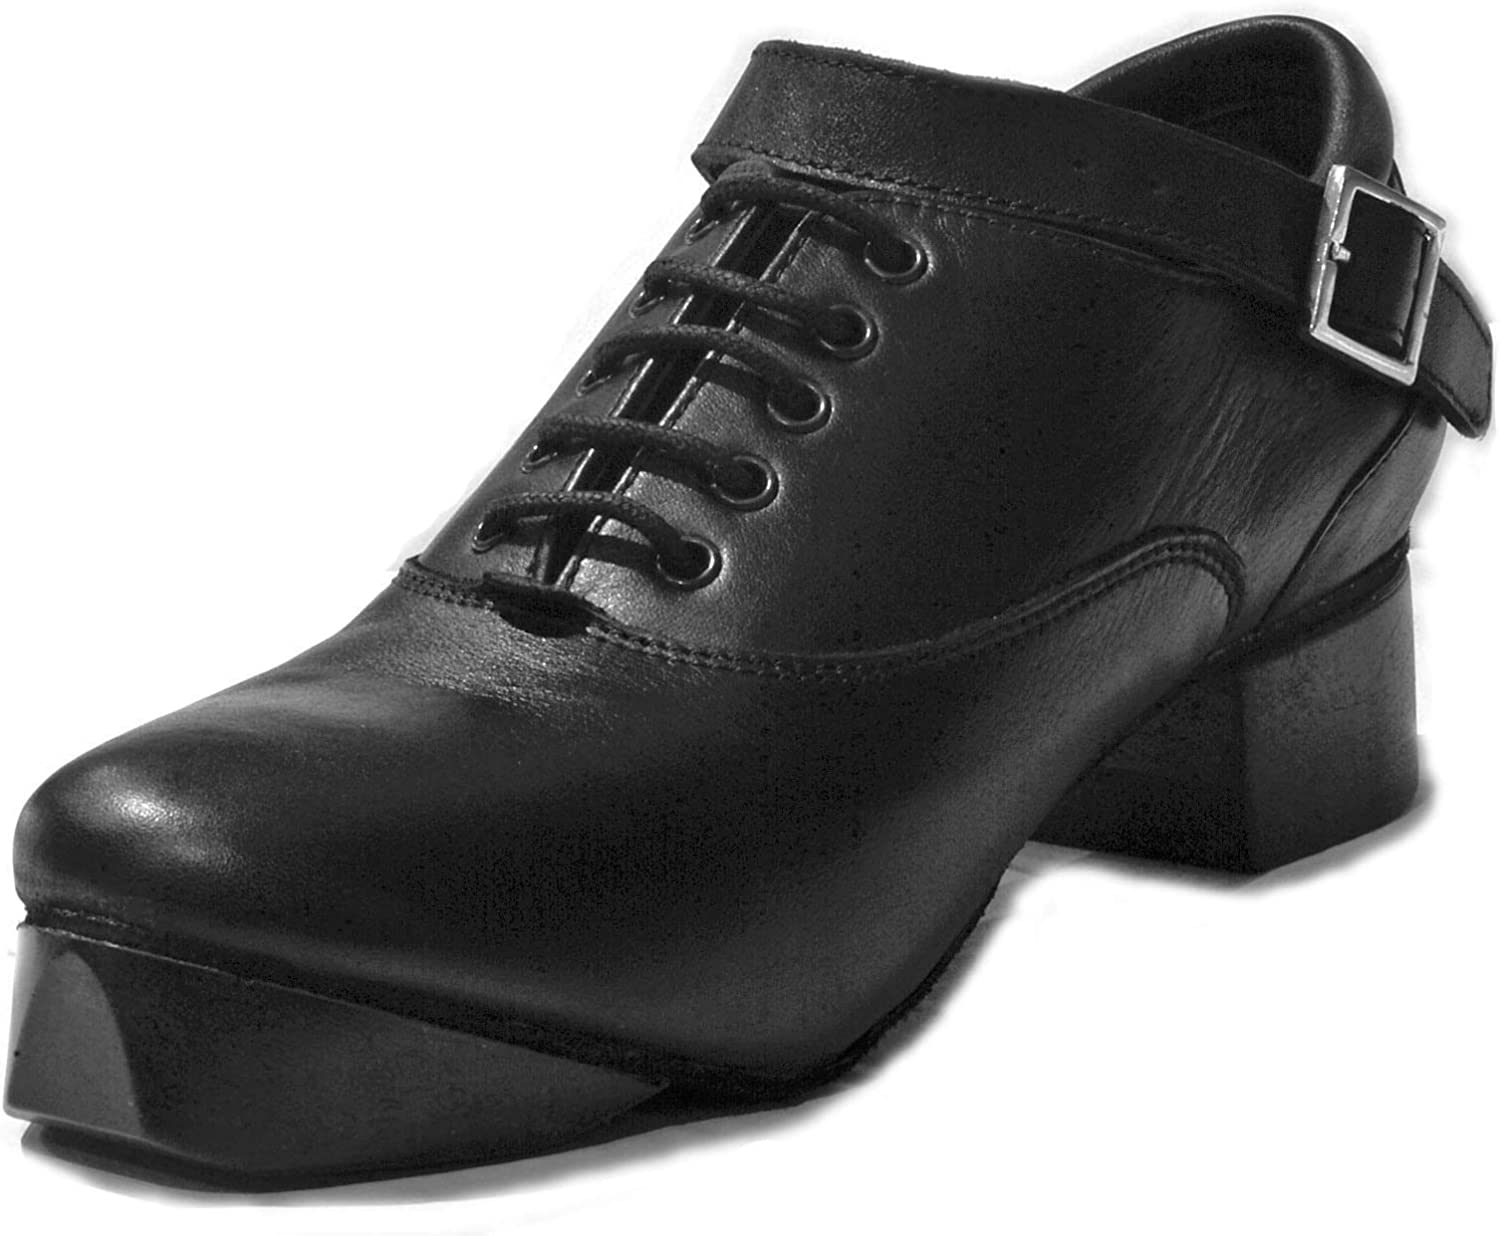 Large-scale sale The Classic Range of Super Challenge the lowest price of Japan ☆ Soft for Irish Shoes Dan Hard Leather